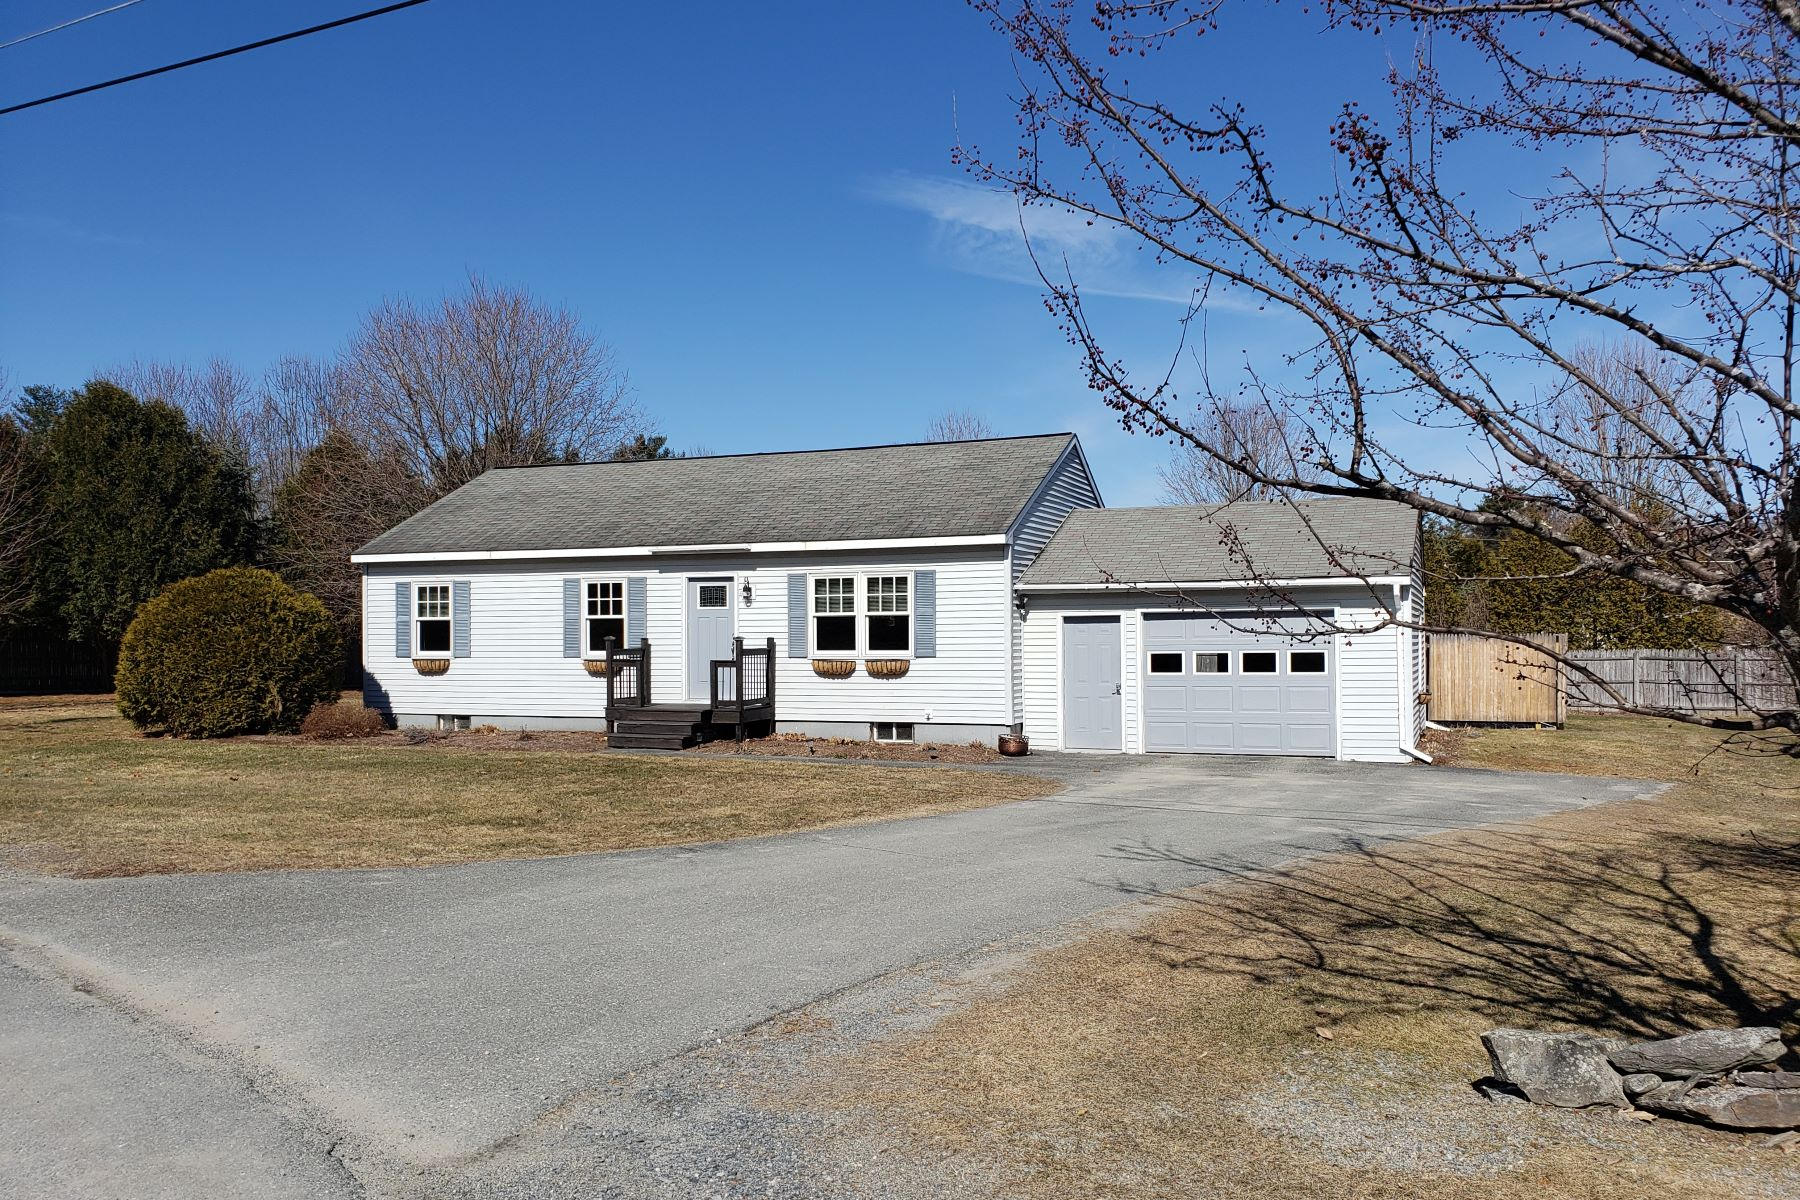 Single Family Homes for Sale at Three Bedroom Ranch in Bradford 14 Plateau Acres W Bradford, Vermont 05033 United States